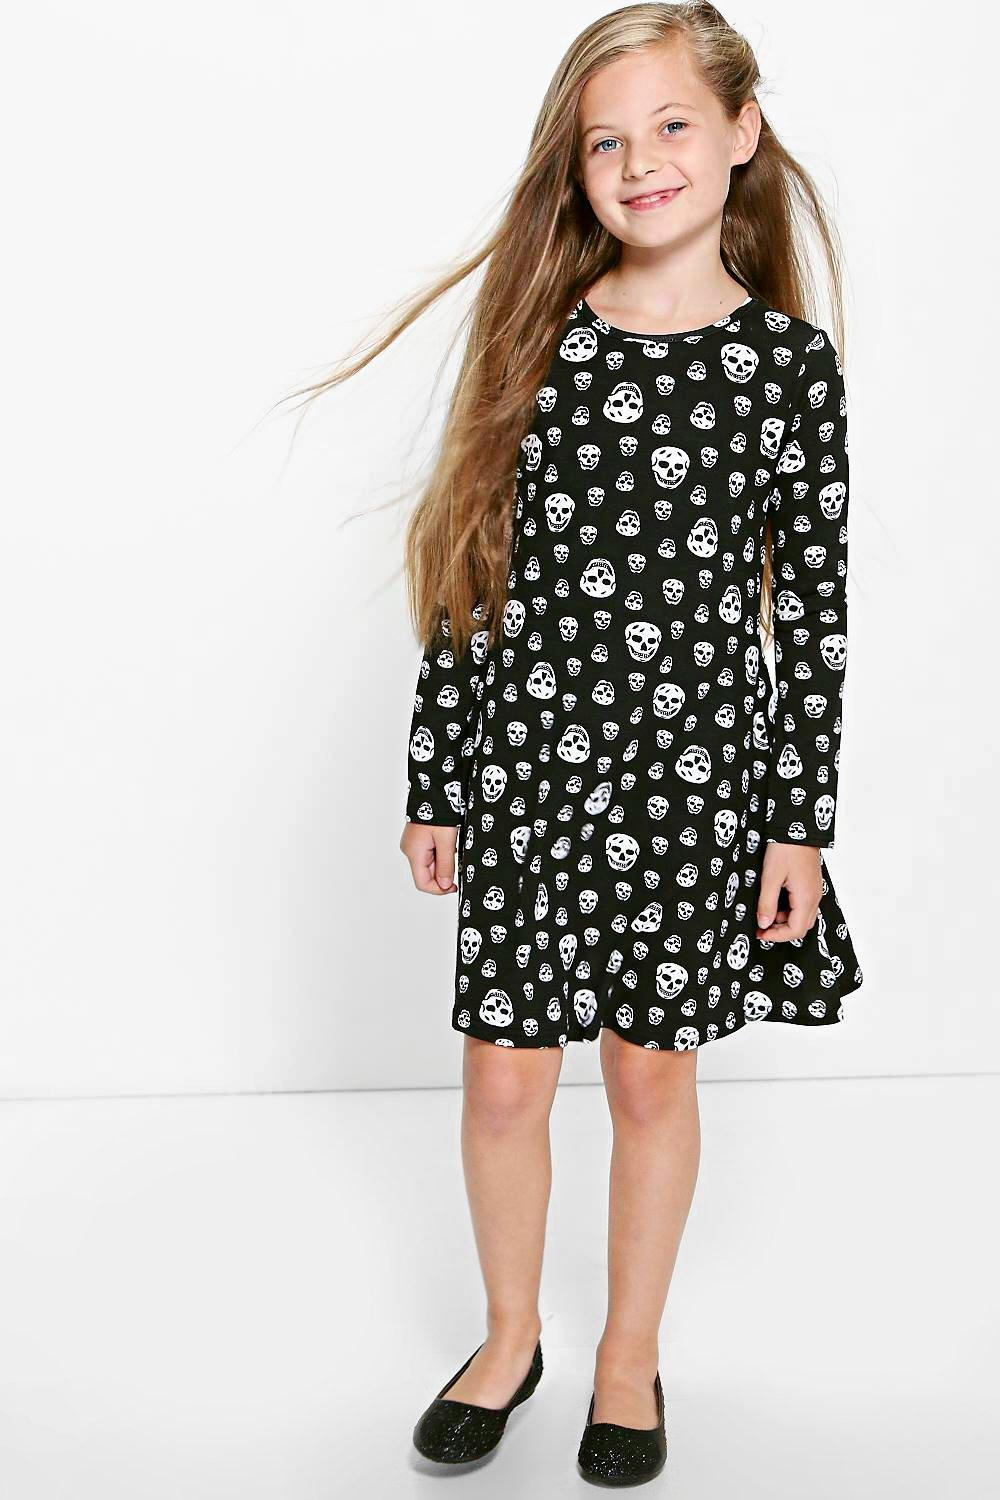 Girls Skull Print Swing Dress